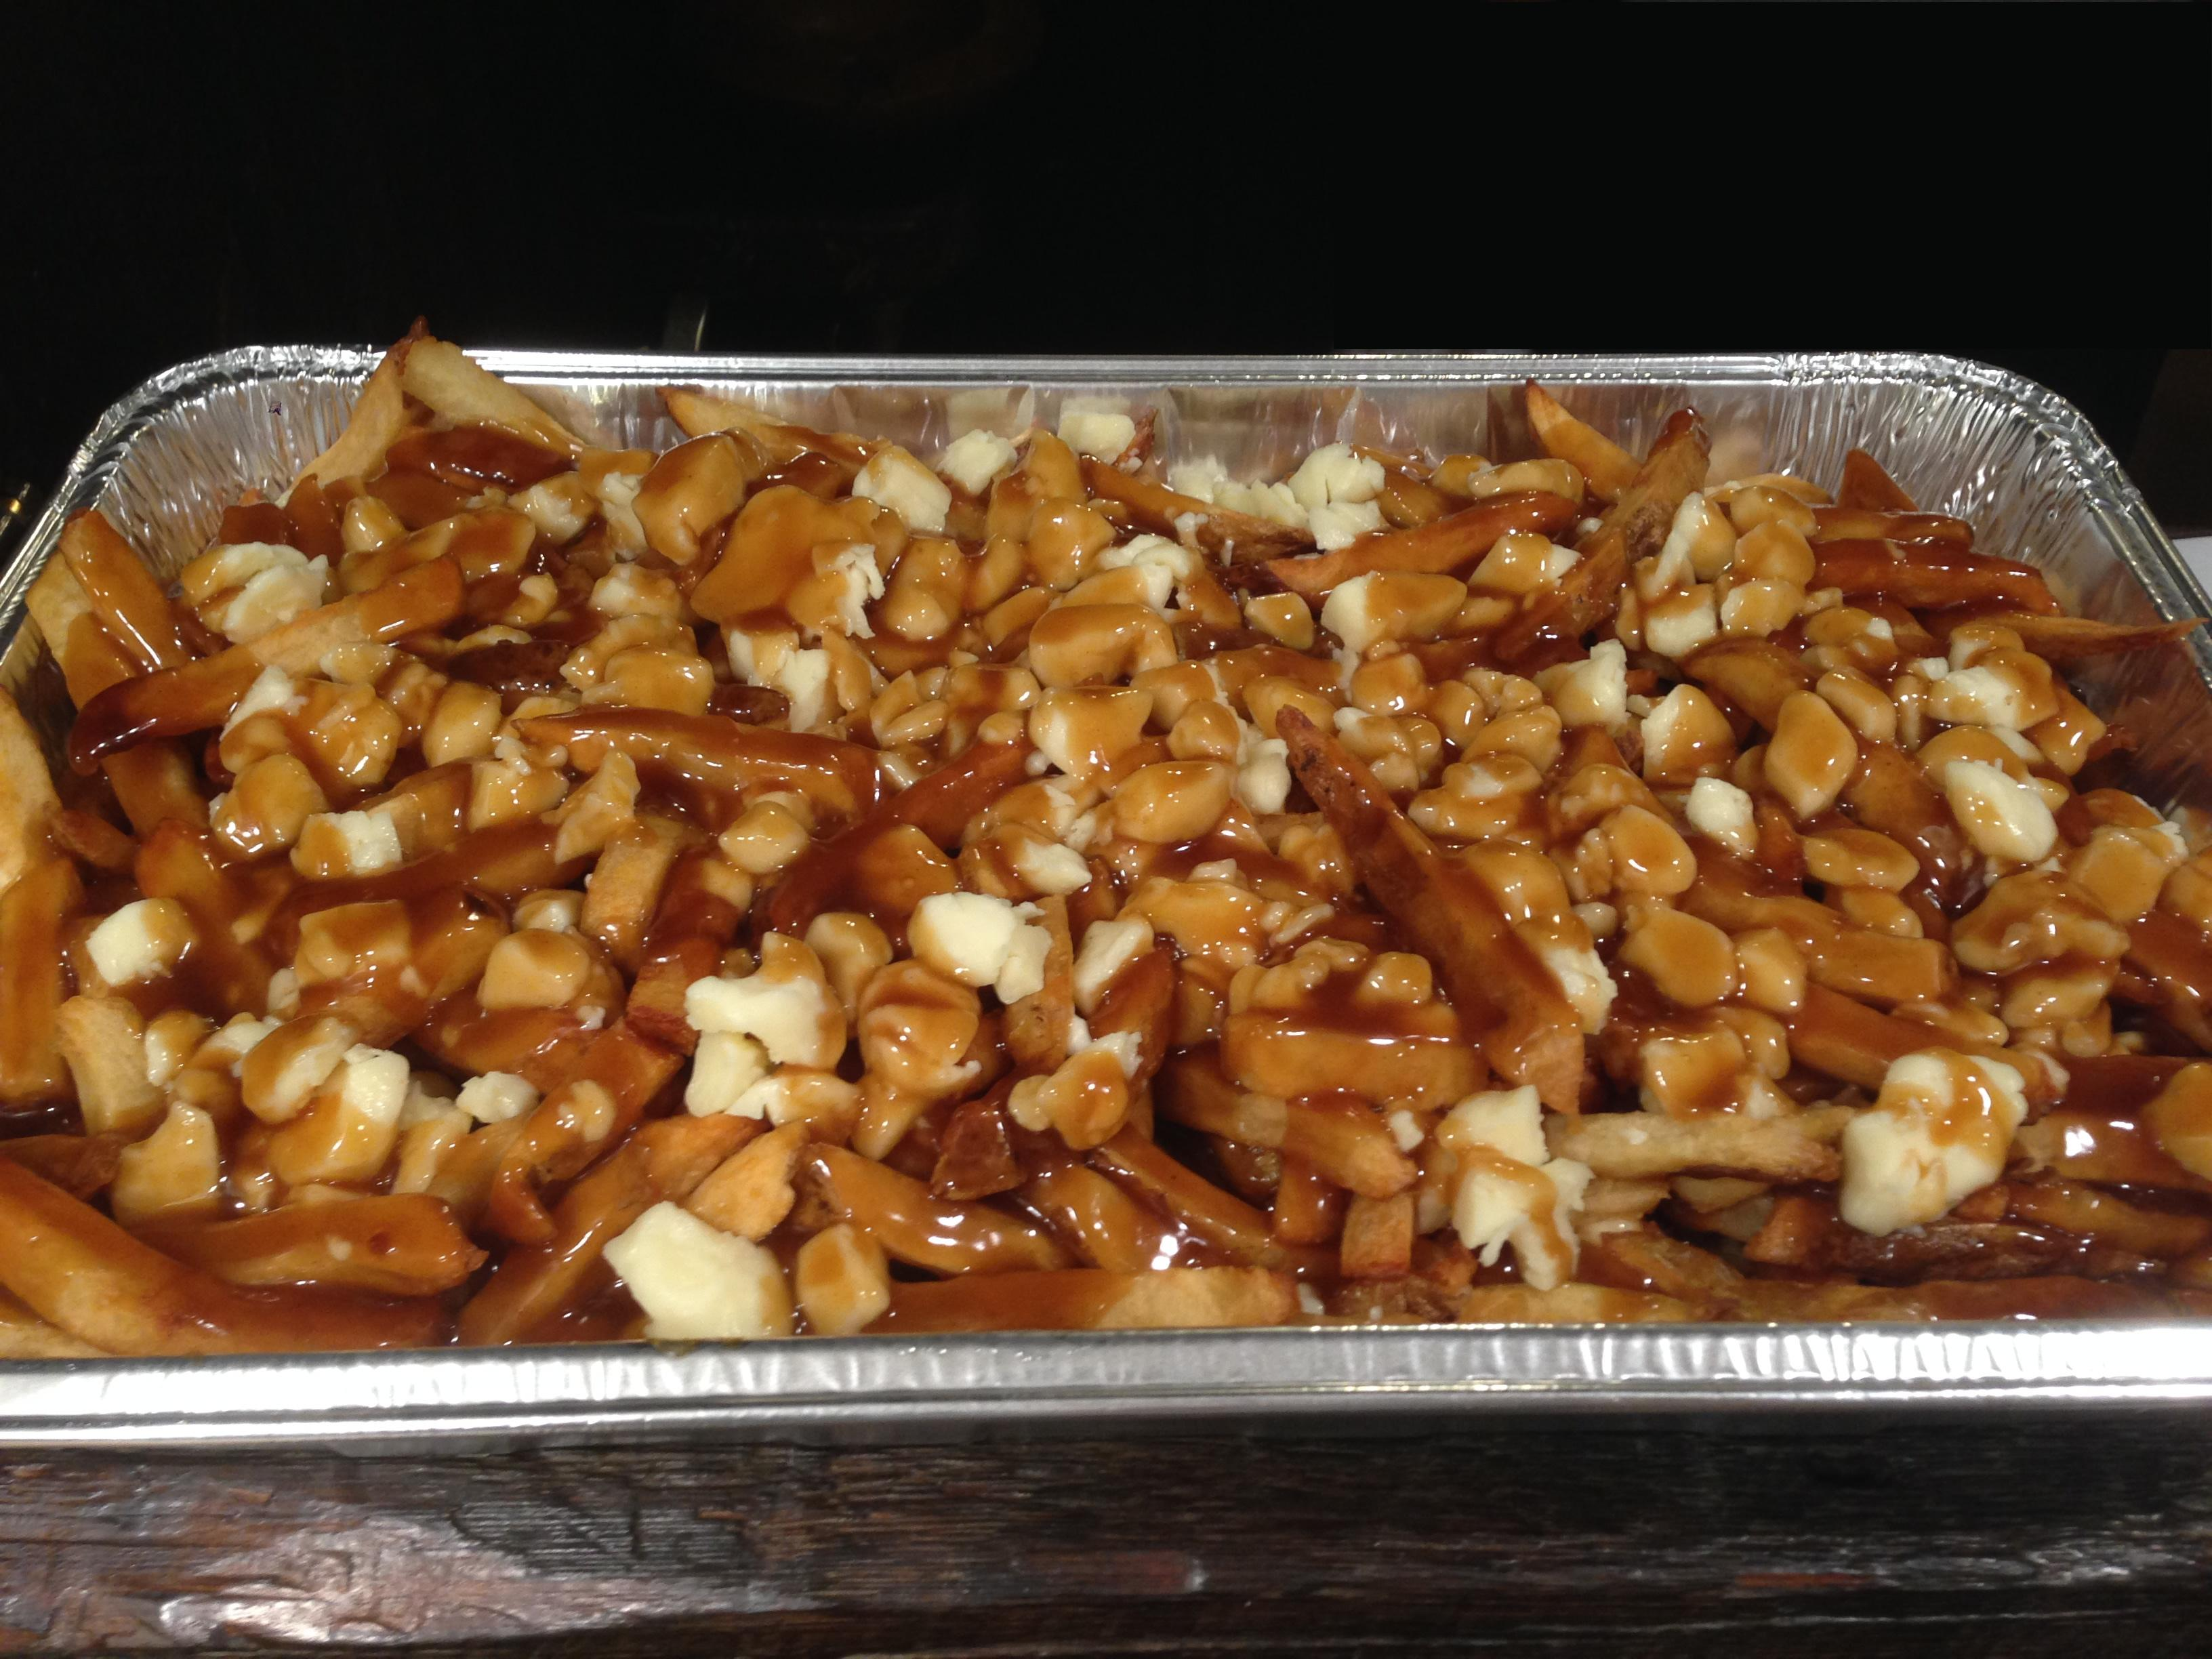 Poutine Party Platter at Pommes Frites